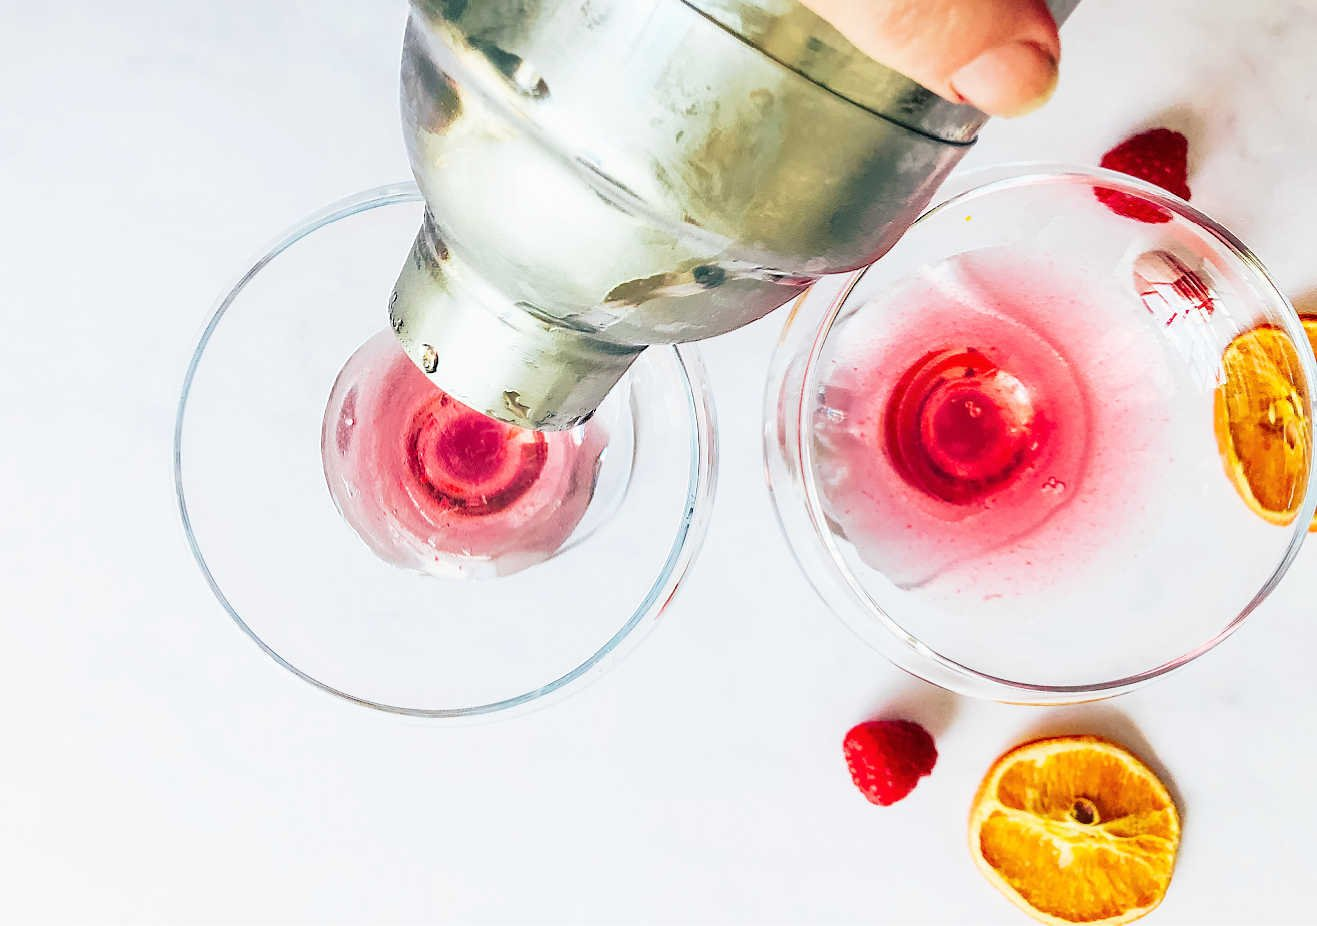 Add the cranberry gin to a cocktail mixer with ice and shake to cool